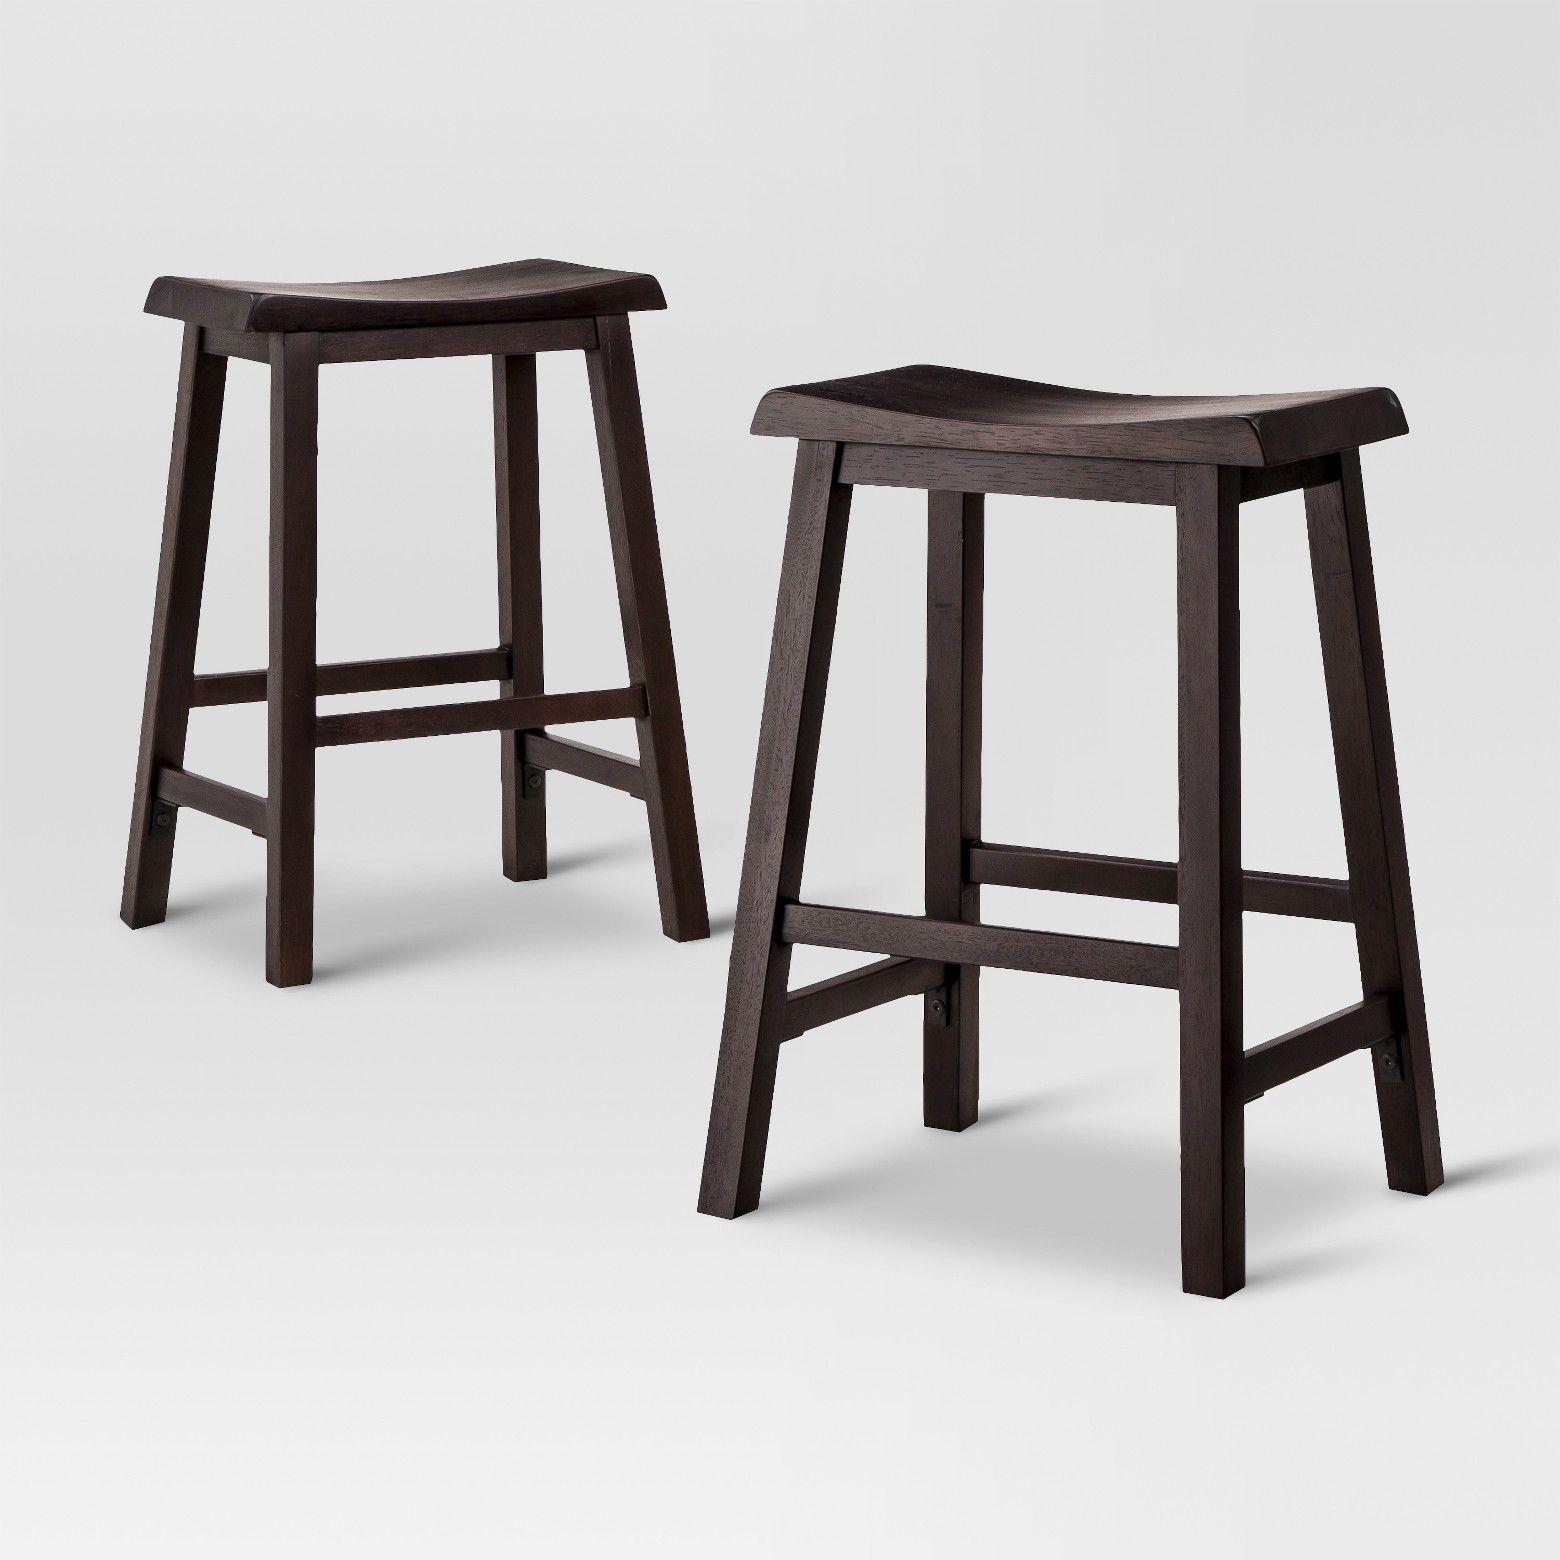 The Trenton Counter Stool From Threshold Is Simple Yet Stunning